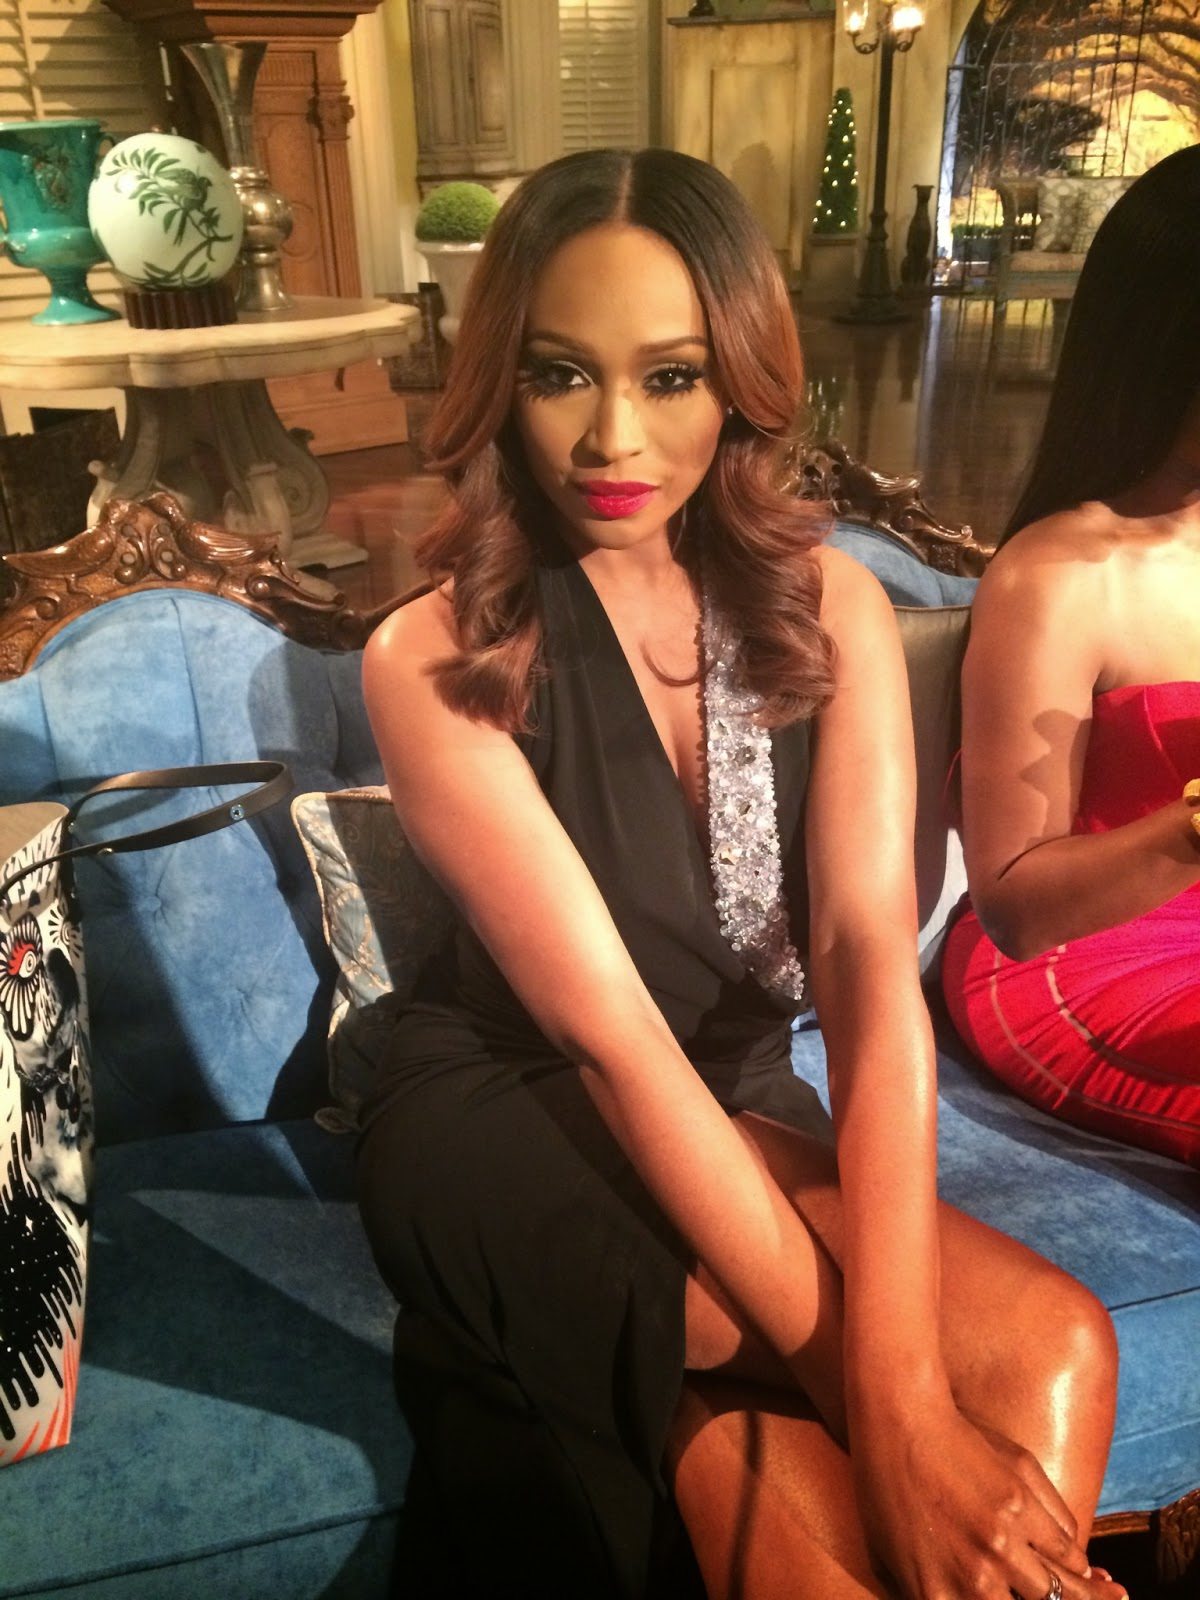 dave franco hairstyle : Pics Of Cynthia Bailey Hairstyles HAIRSTYLE GALLERY